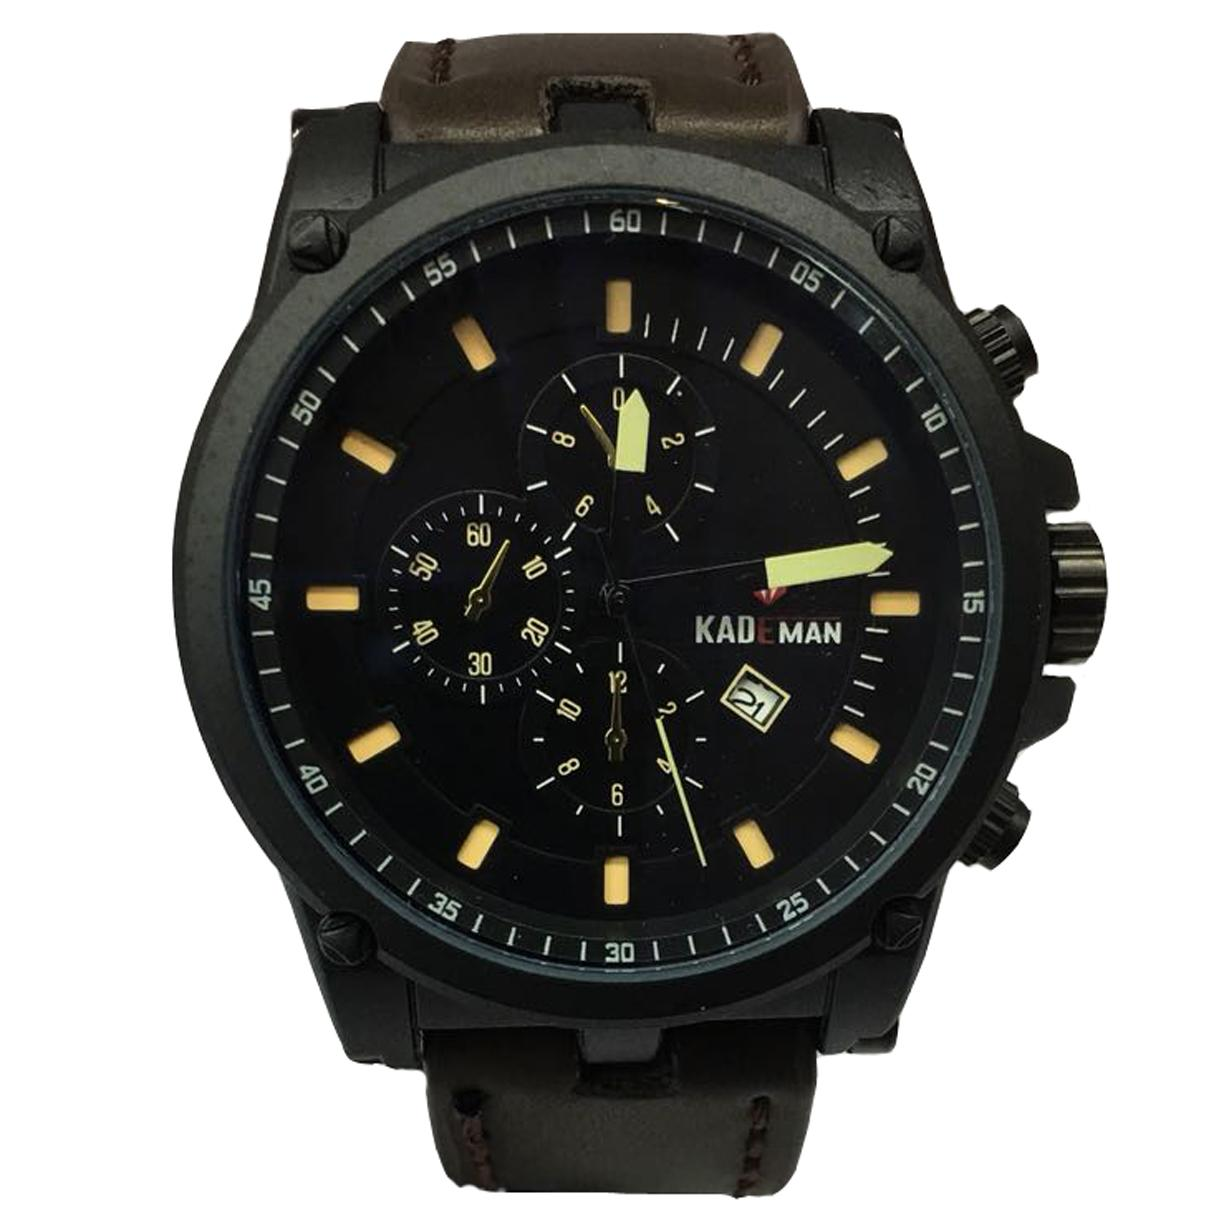 Kademan KD003K Jam Tangan Kasual Pria Murah Anti Air - Quartz - Chrono Off - Original - Tali Kulit